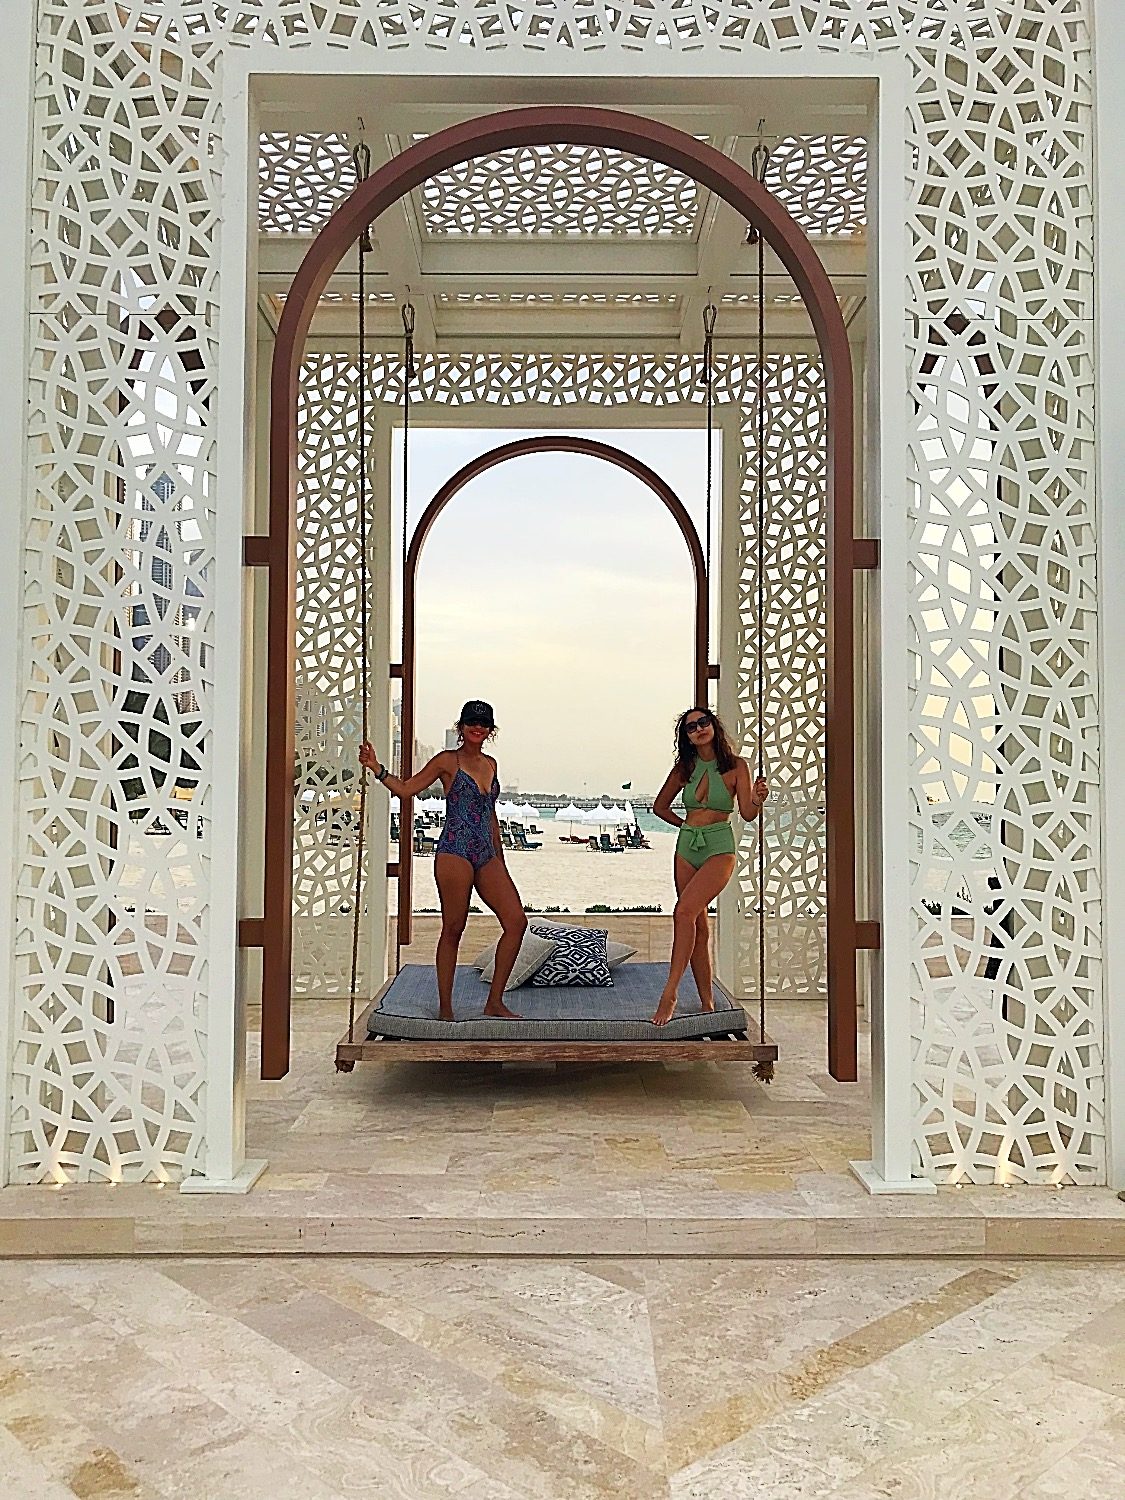 lifestyle redesign  - 685f45 e51d29d2f00342a5a550bc56509d19d7~mv2 - Drift Beach Dubai LifeStyle Review: A Magical Experience